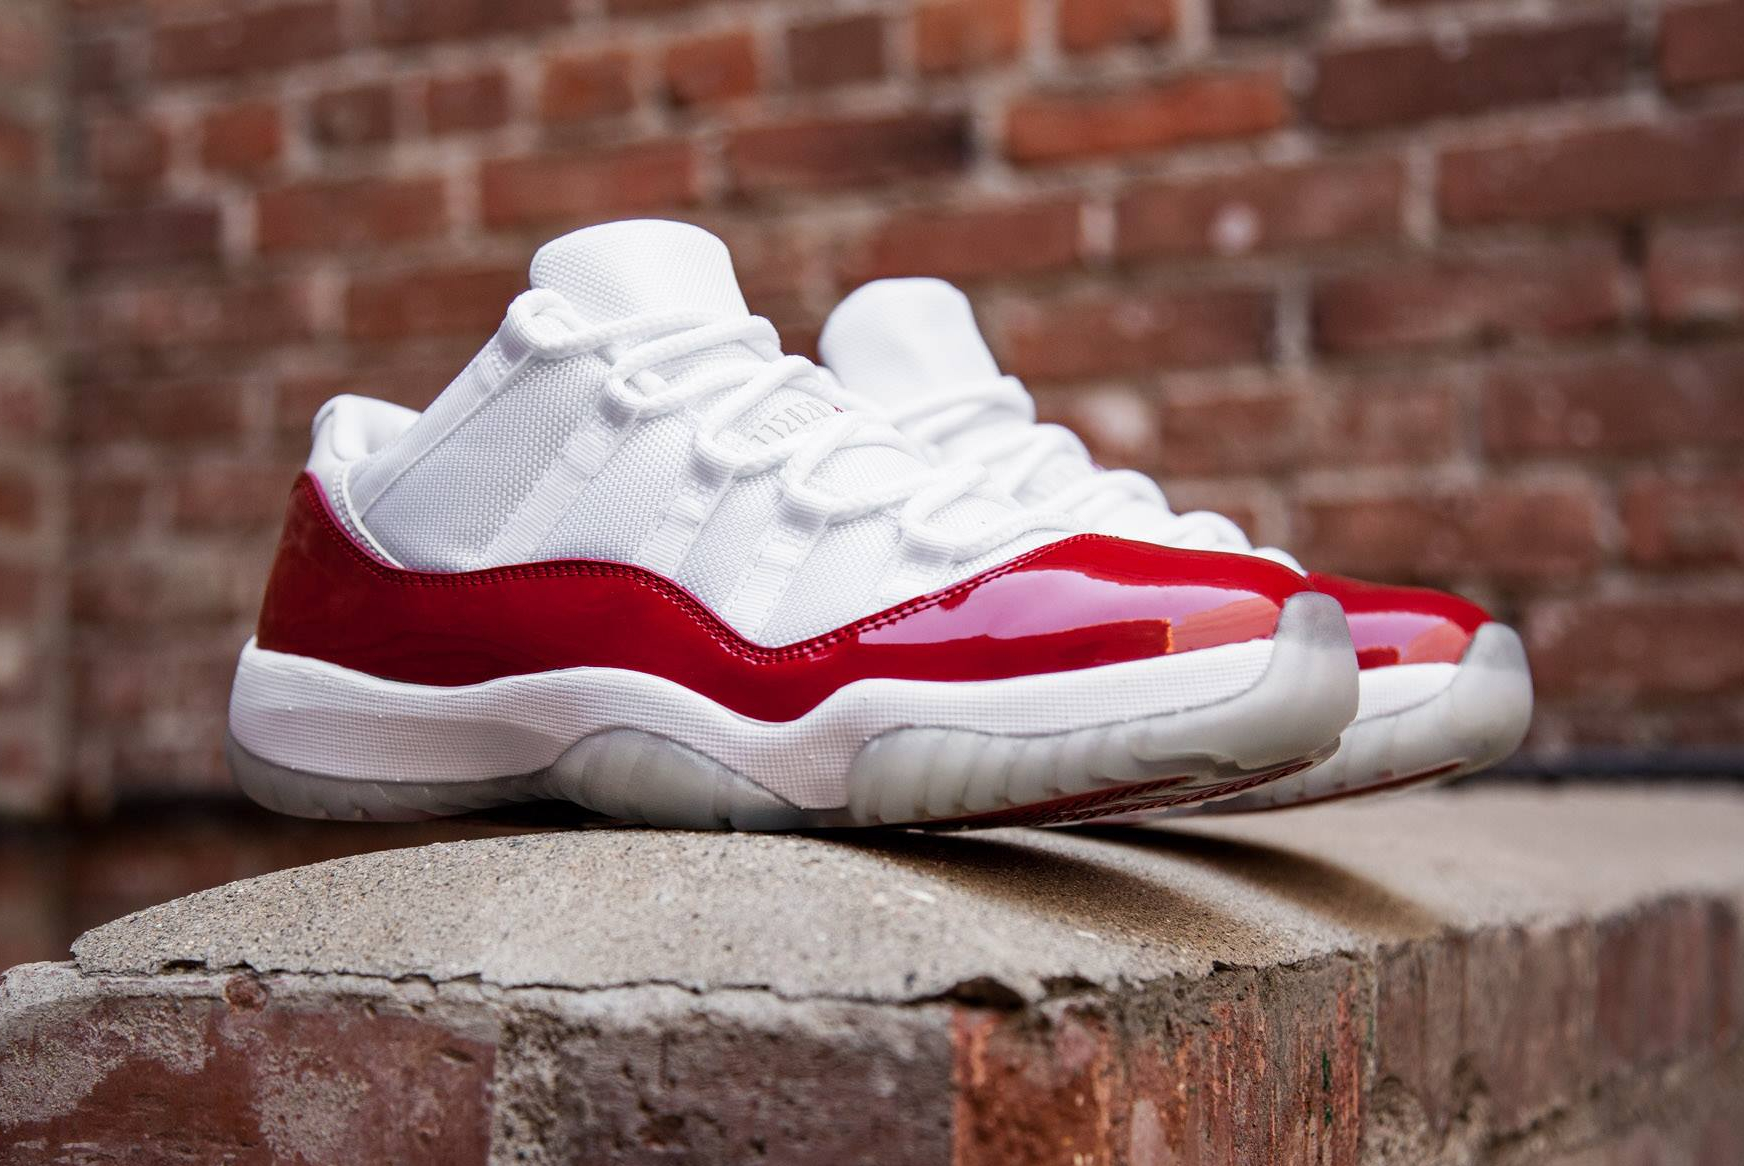 acheter basket Air Jordan 11 Low Retro 'White Varsity Red' 2016 (1)